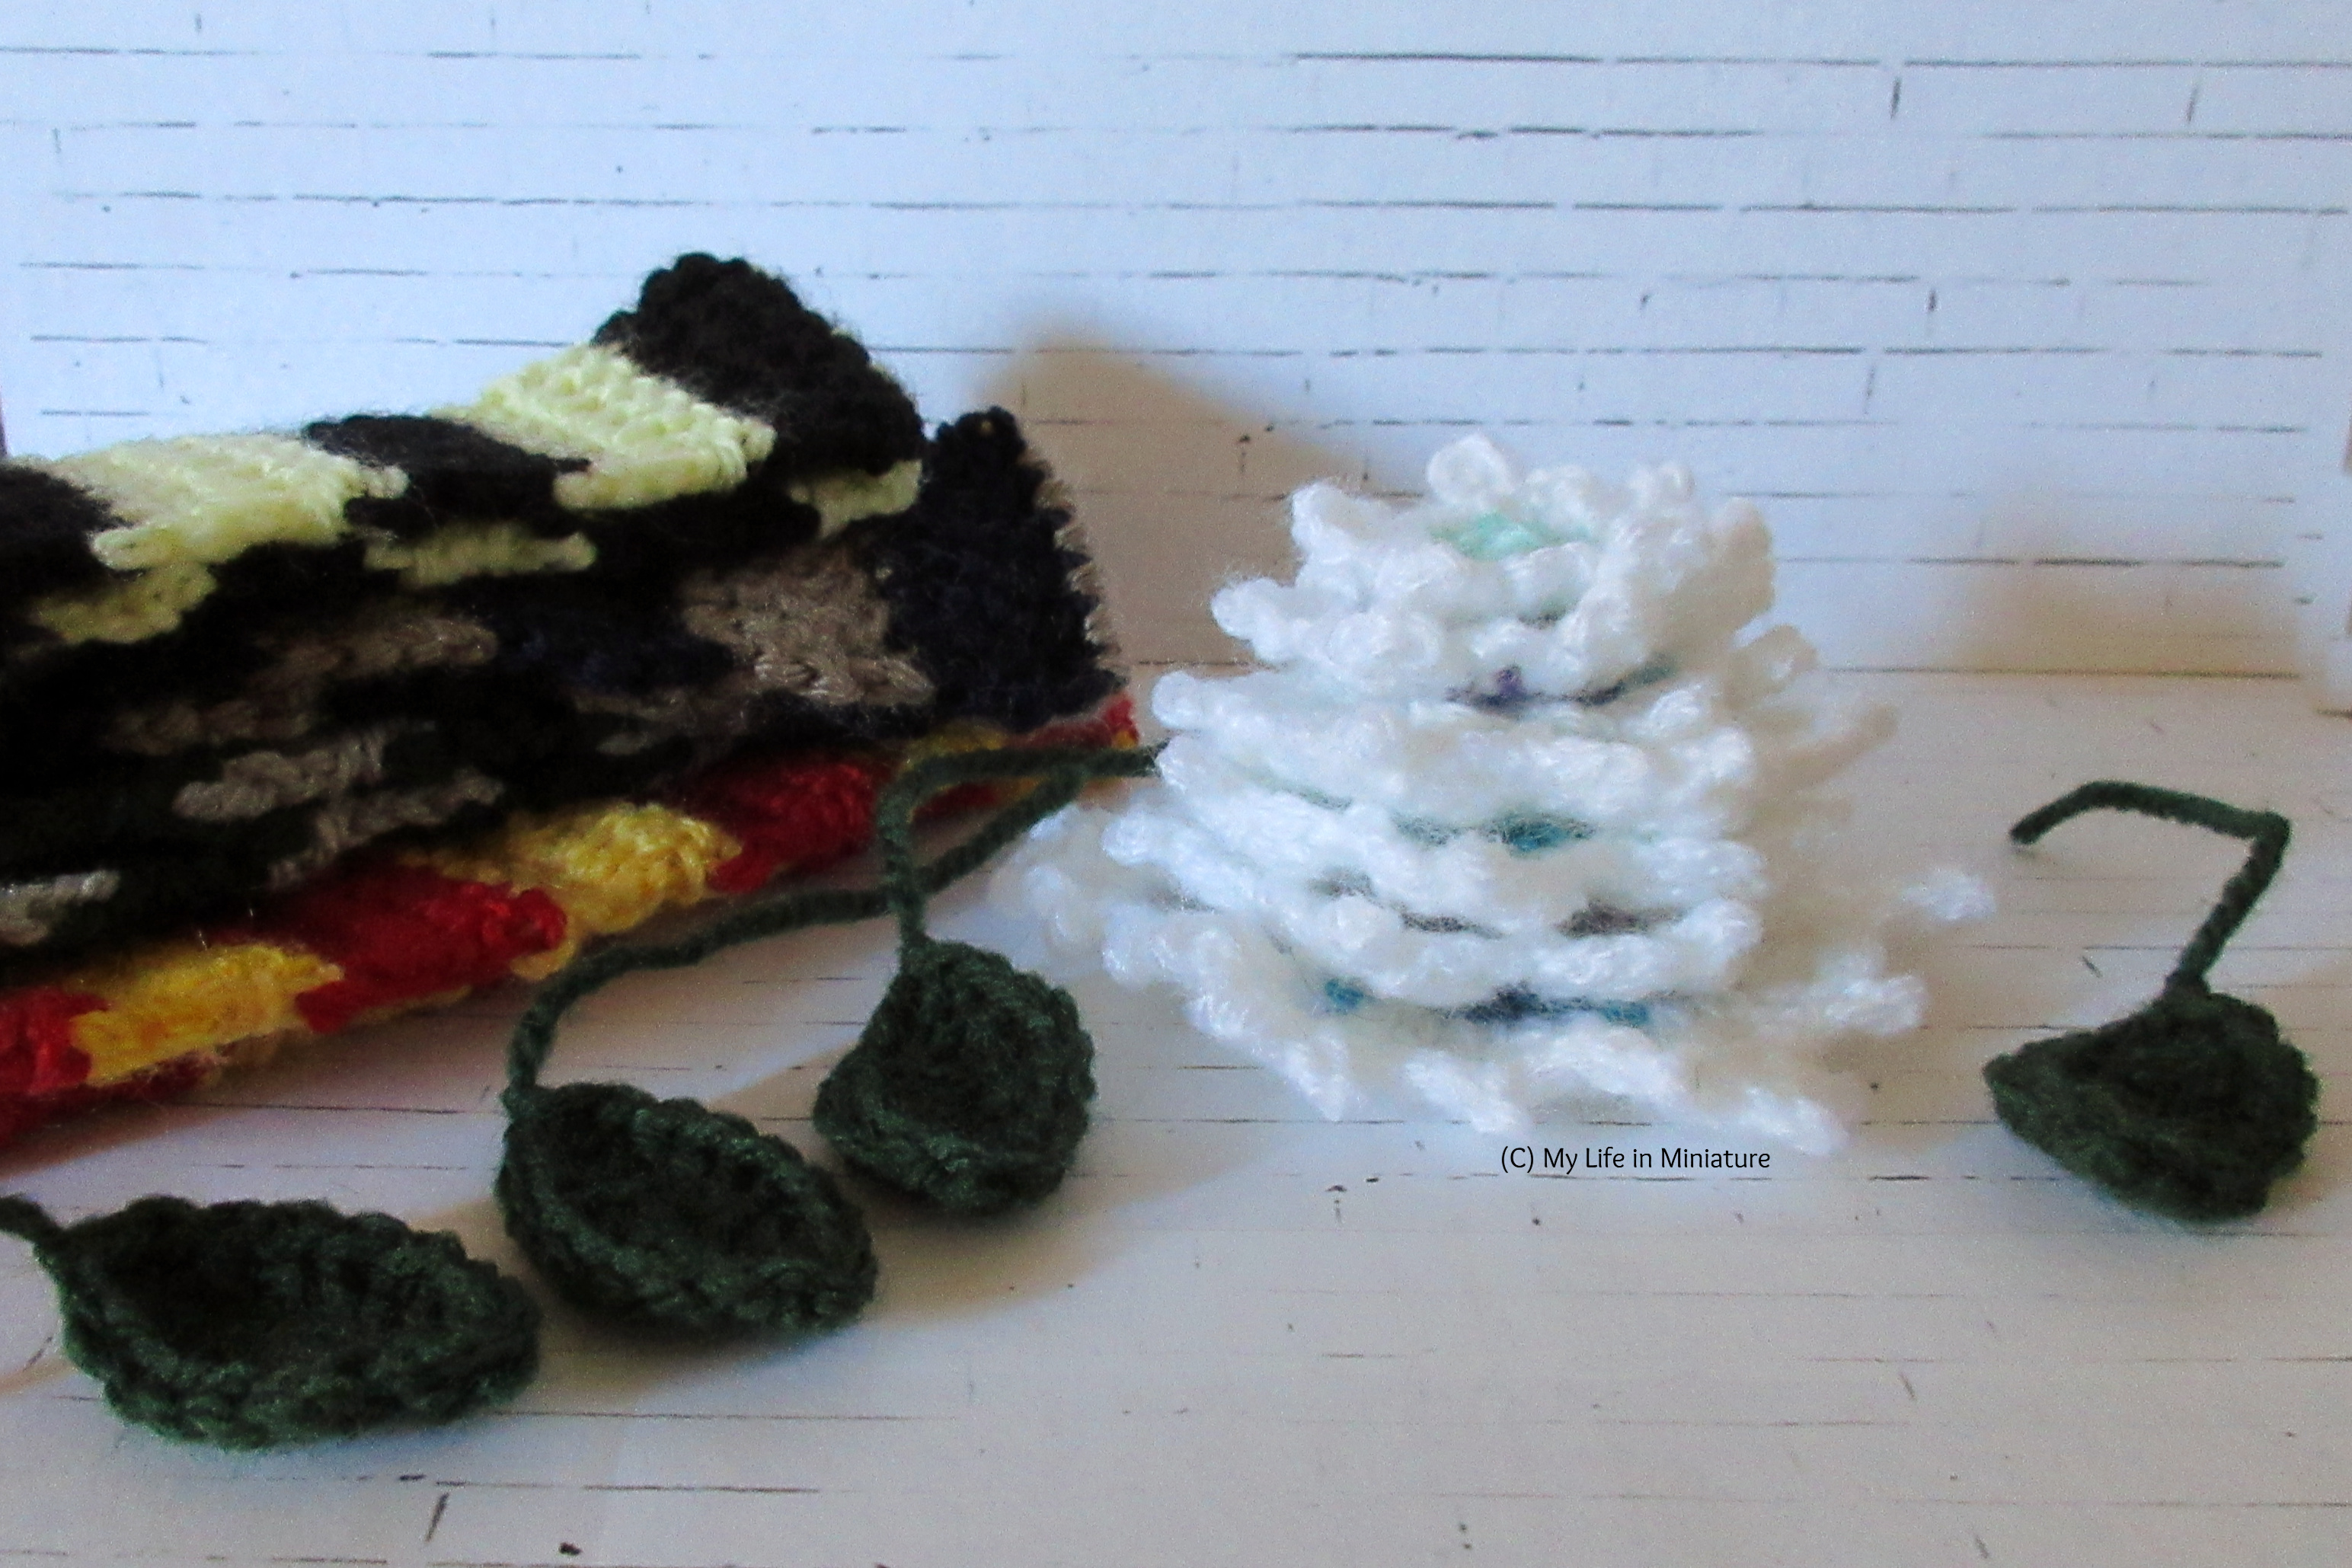 A stack of crocheted snowflakes, small crocheted scarves, and four crocheted green leaves sit against a white brick background.